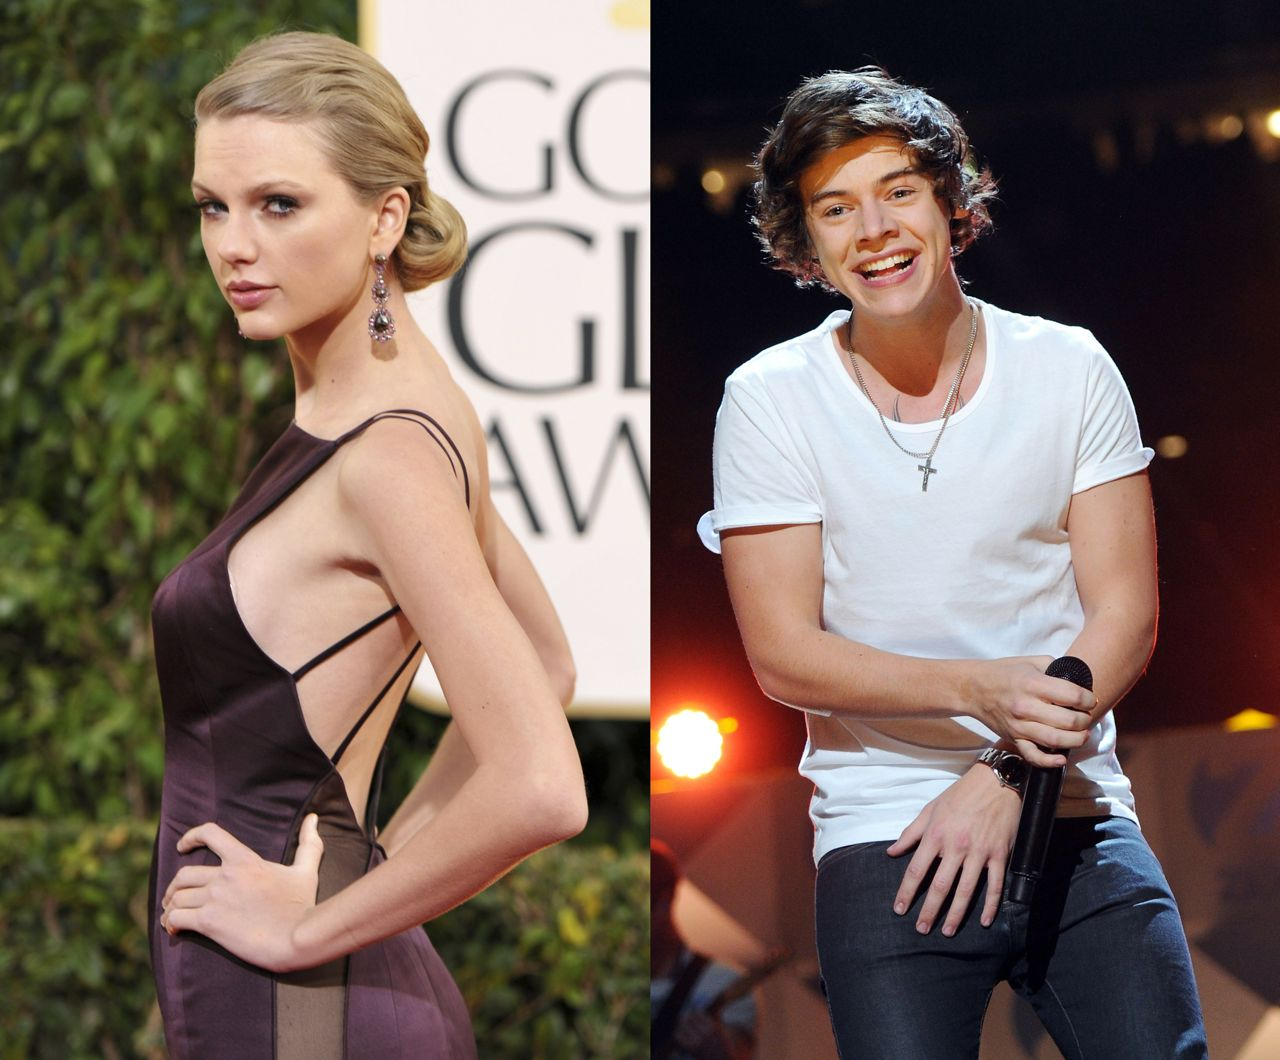 harry styles, taylor swift, taylor swift and harry styles, harry styles and taylor swift, harry styles taylor swift breakup, harry styles and taylor swift break up